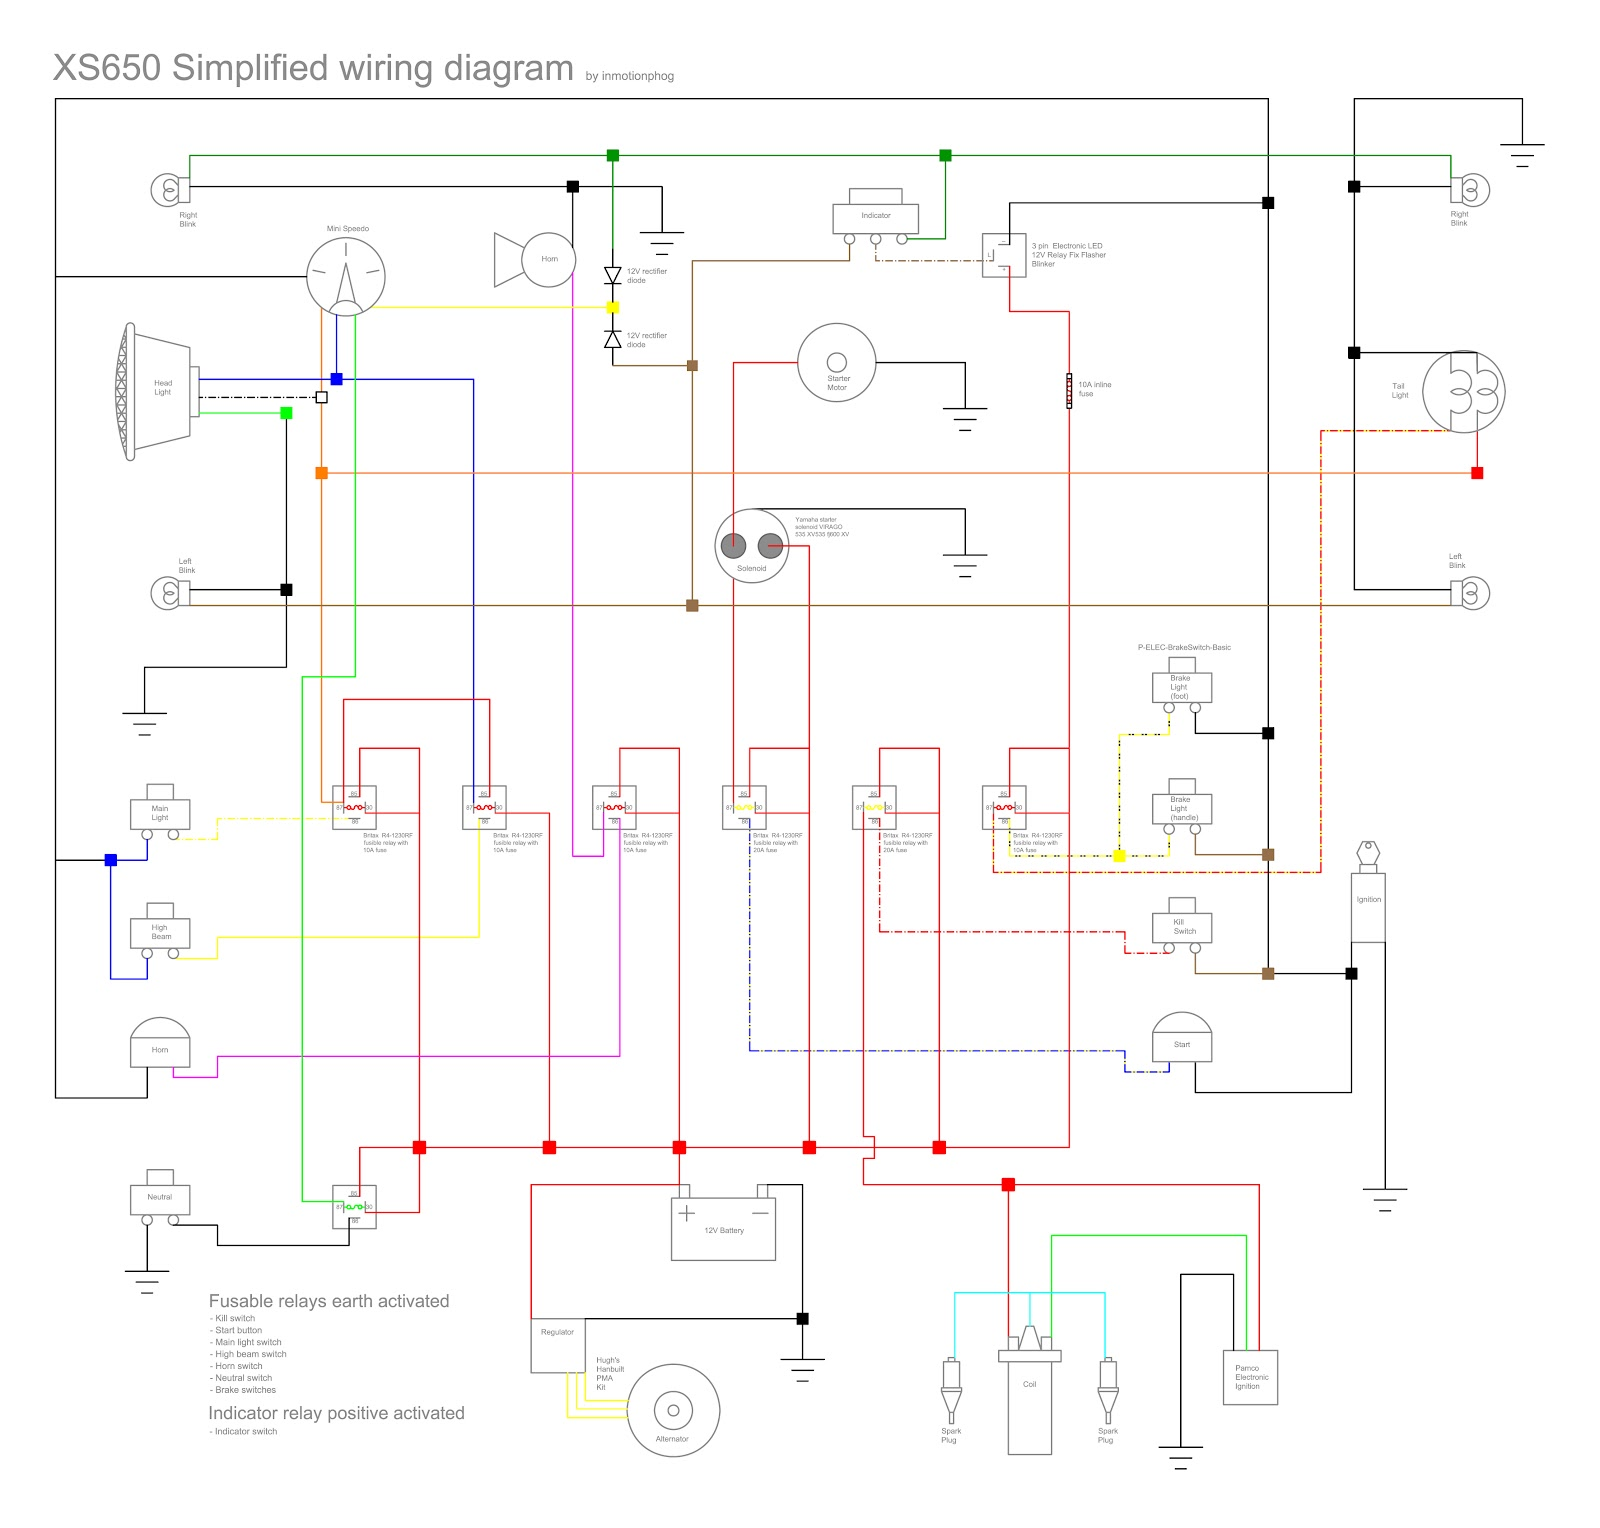 small resolution of xs650 simplified wiring harness 31 wiring diagram images xj550 simplified wiring xs650 simple wiring harness